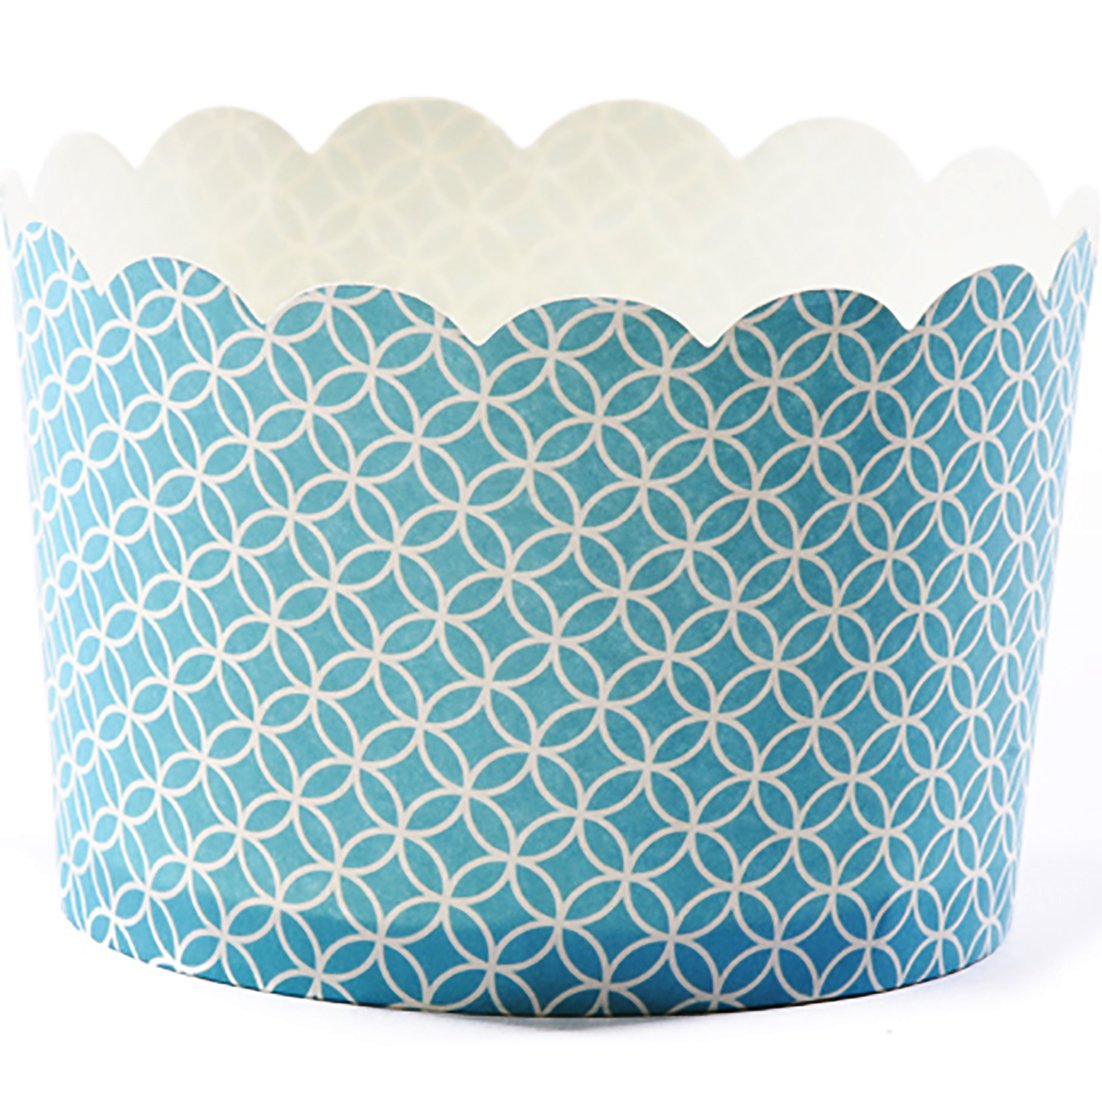 Simply Baked Jumbo Paper Baking Cups, Turquoise Medallion, 20-Pack, Disposable and Oven-safe